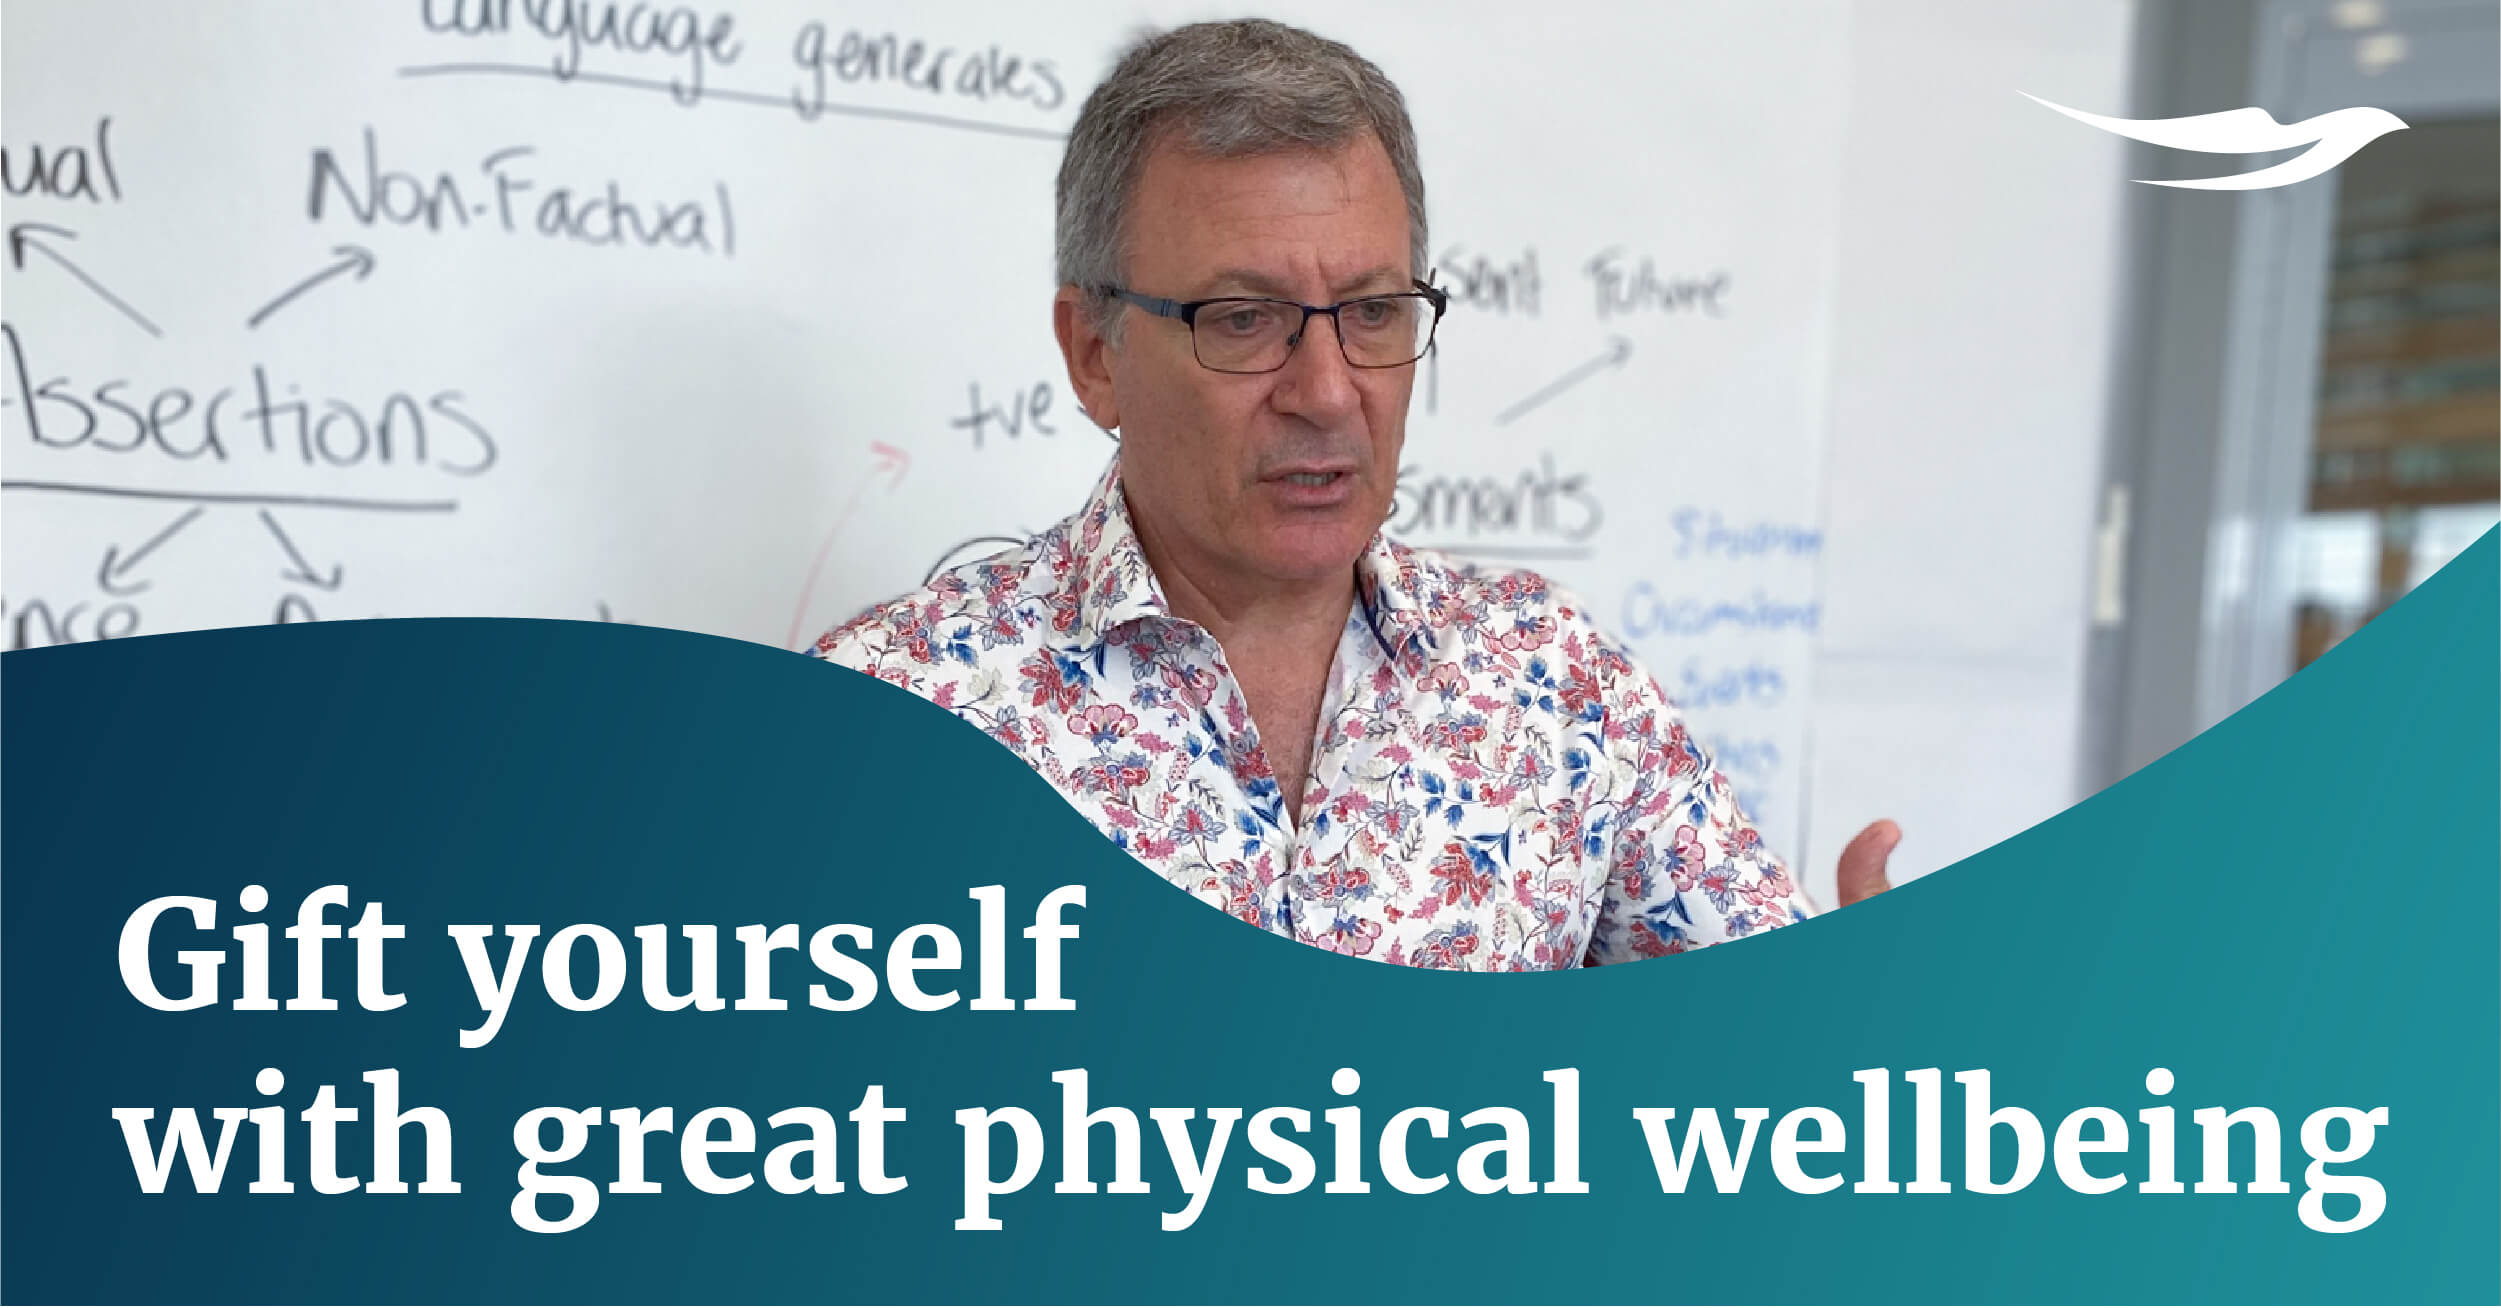 Gift yourself with great physical wellbeing